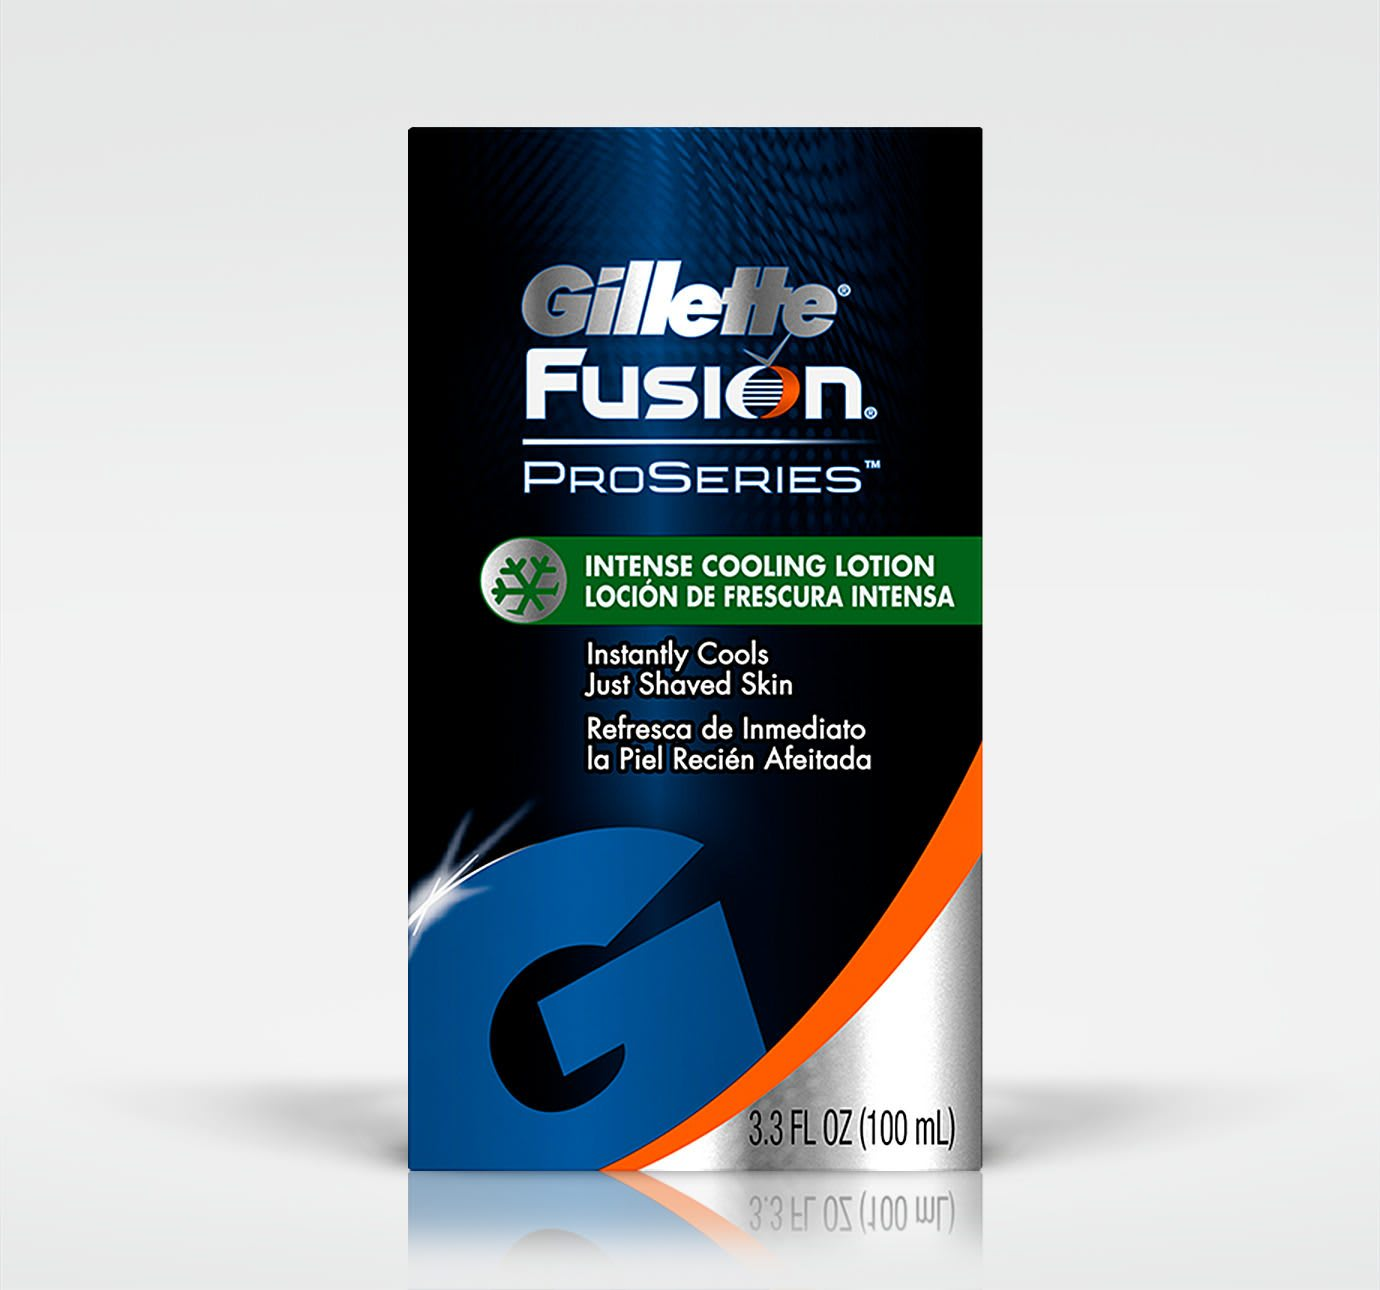 gillette fusion proseries irritation cooling aftershave lotion